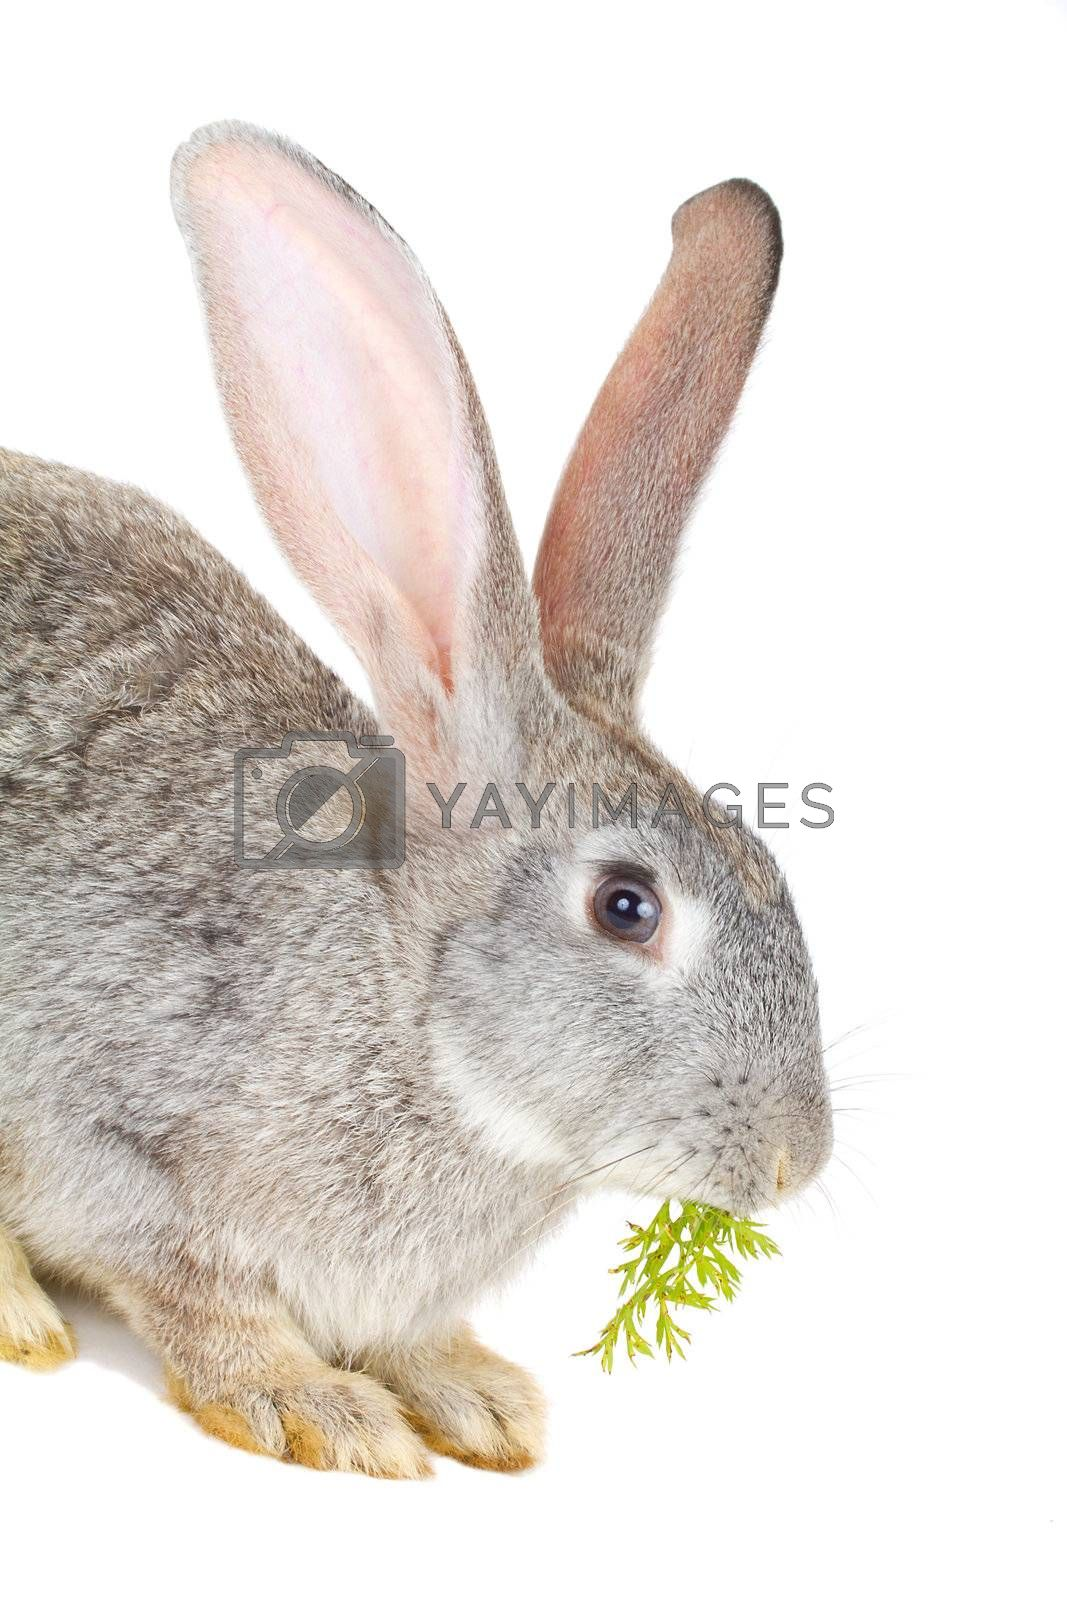 close-up gray rabbit eating the carrot leaves, isolated on white